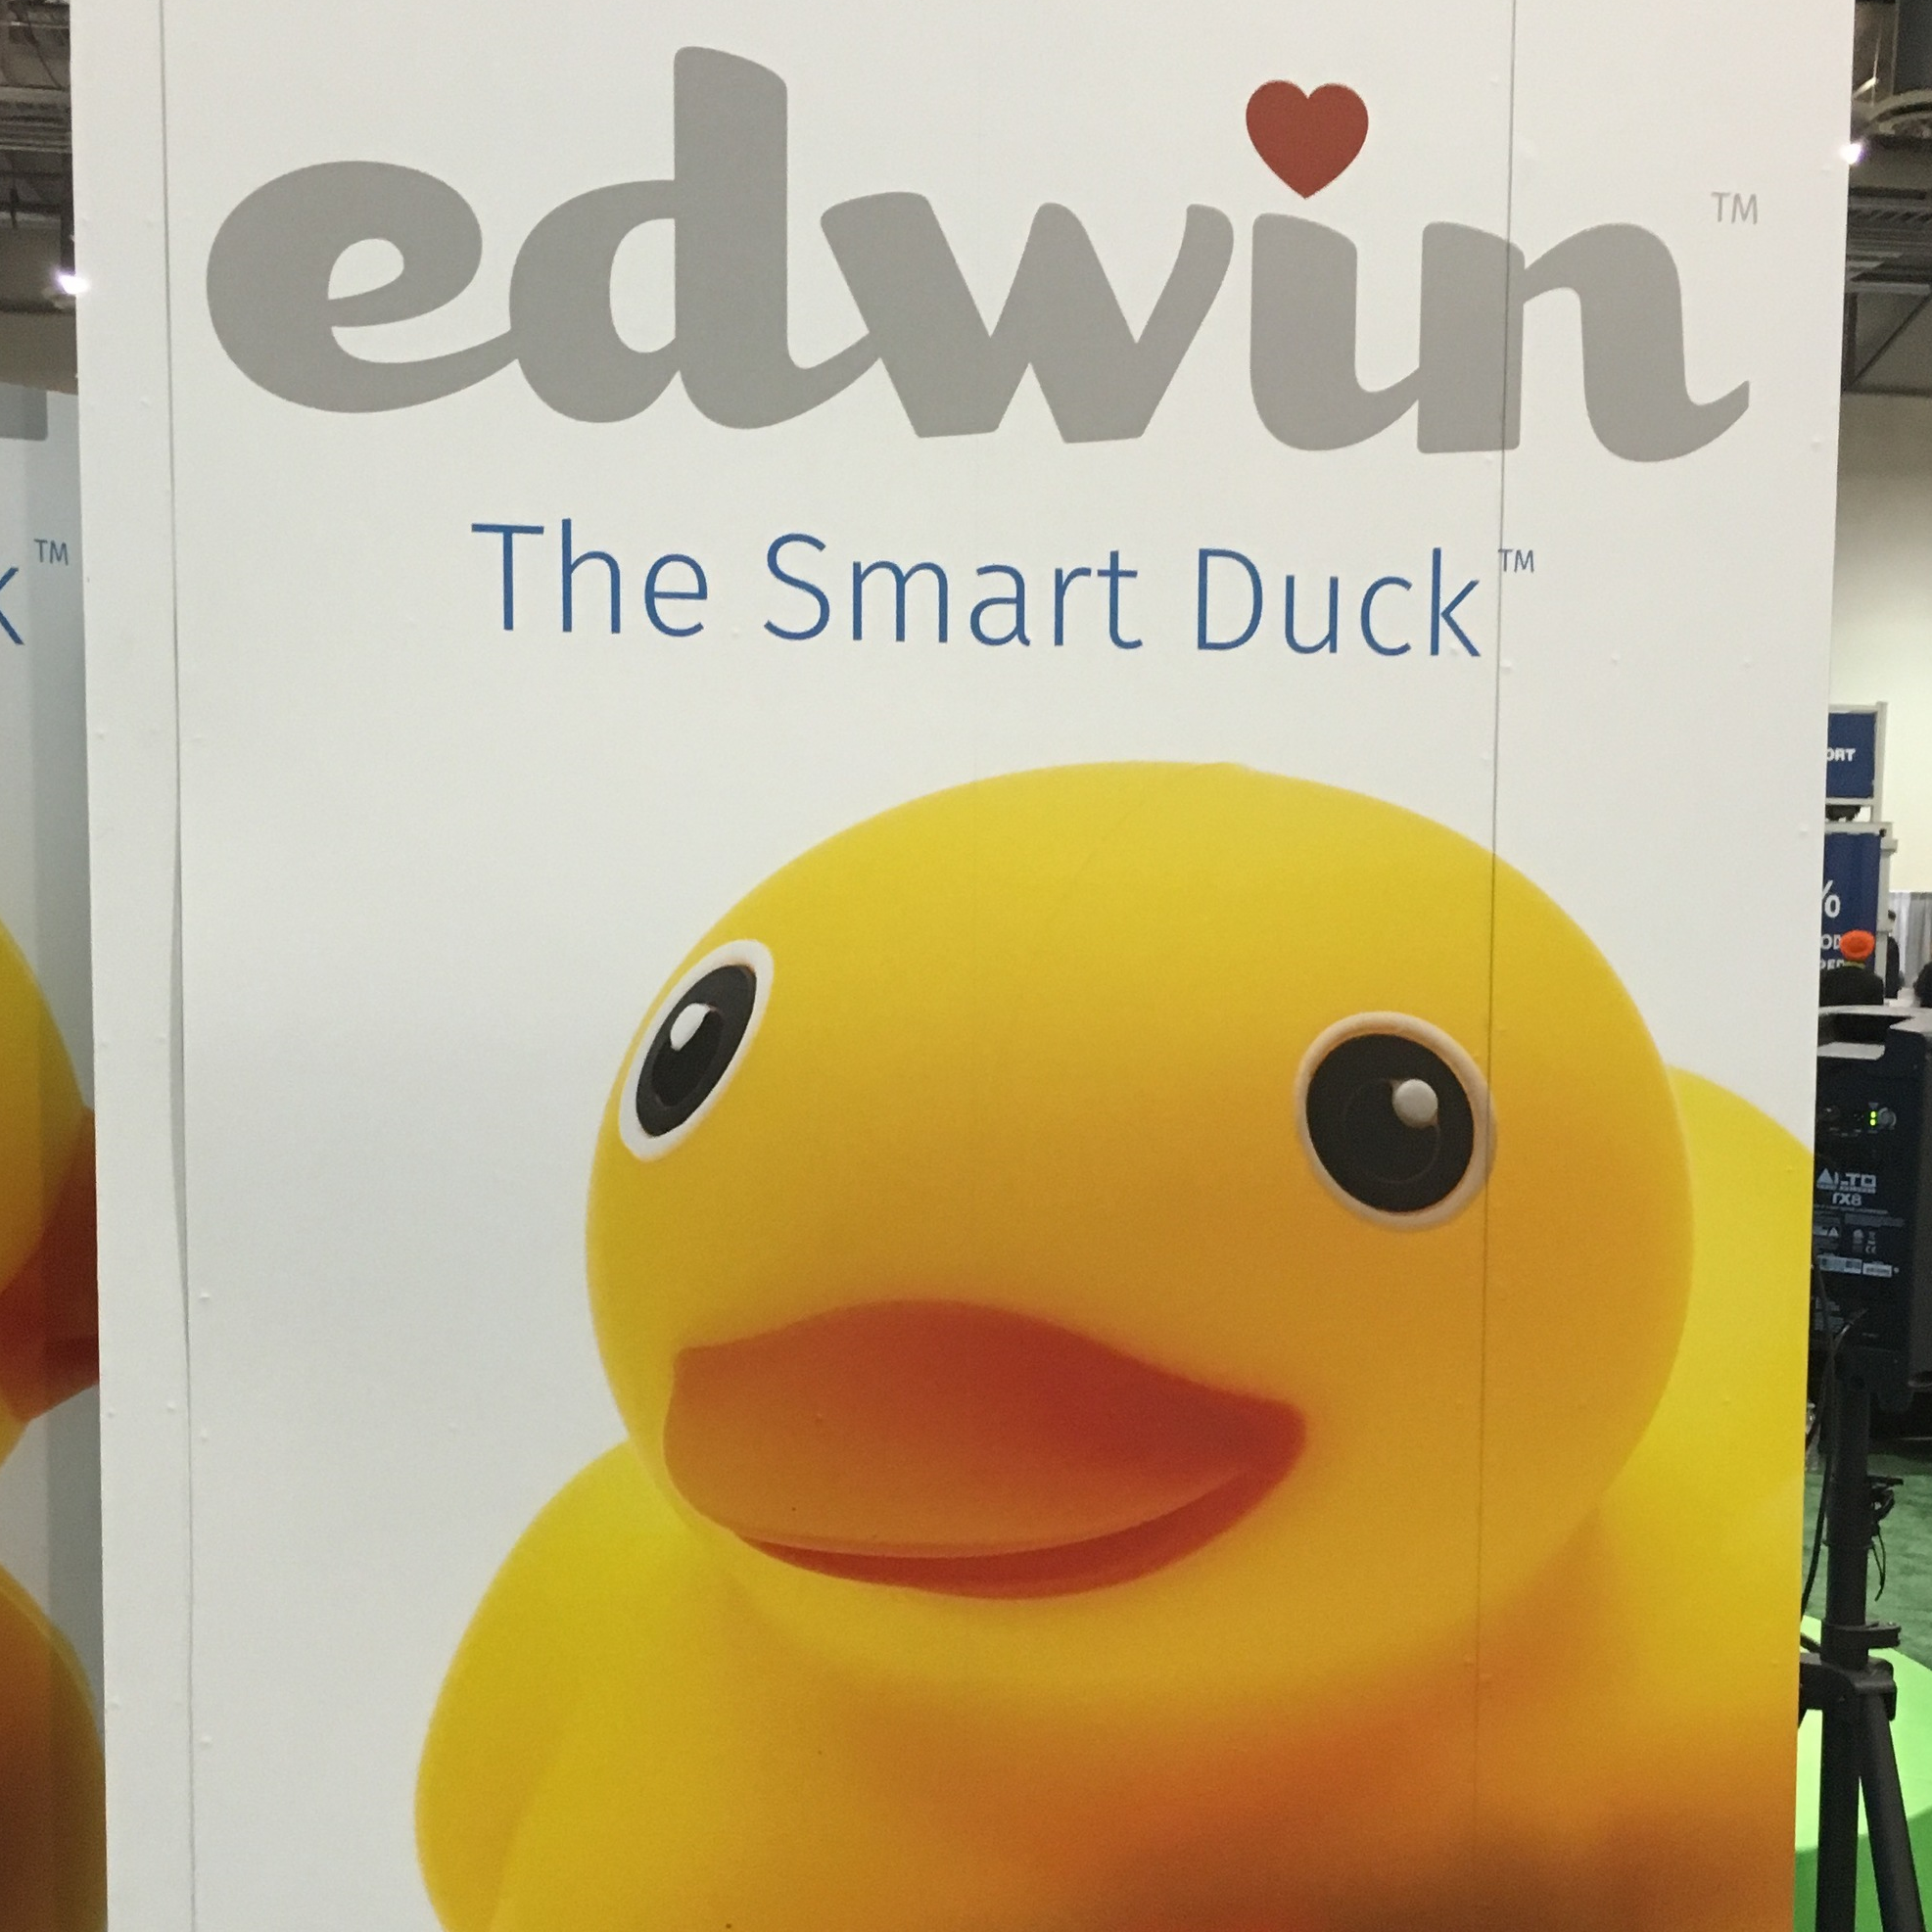 Let's just get this out of the way: We've done it folks. The smart rubber duck is here. We can all go home. Moore's law has met its end.